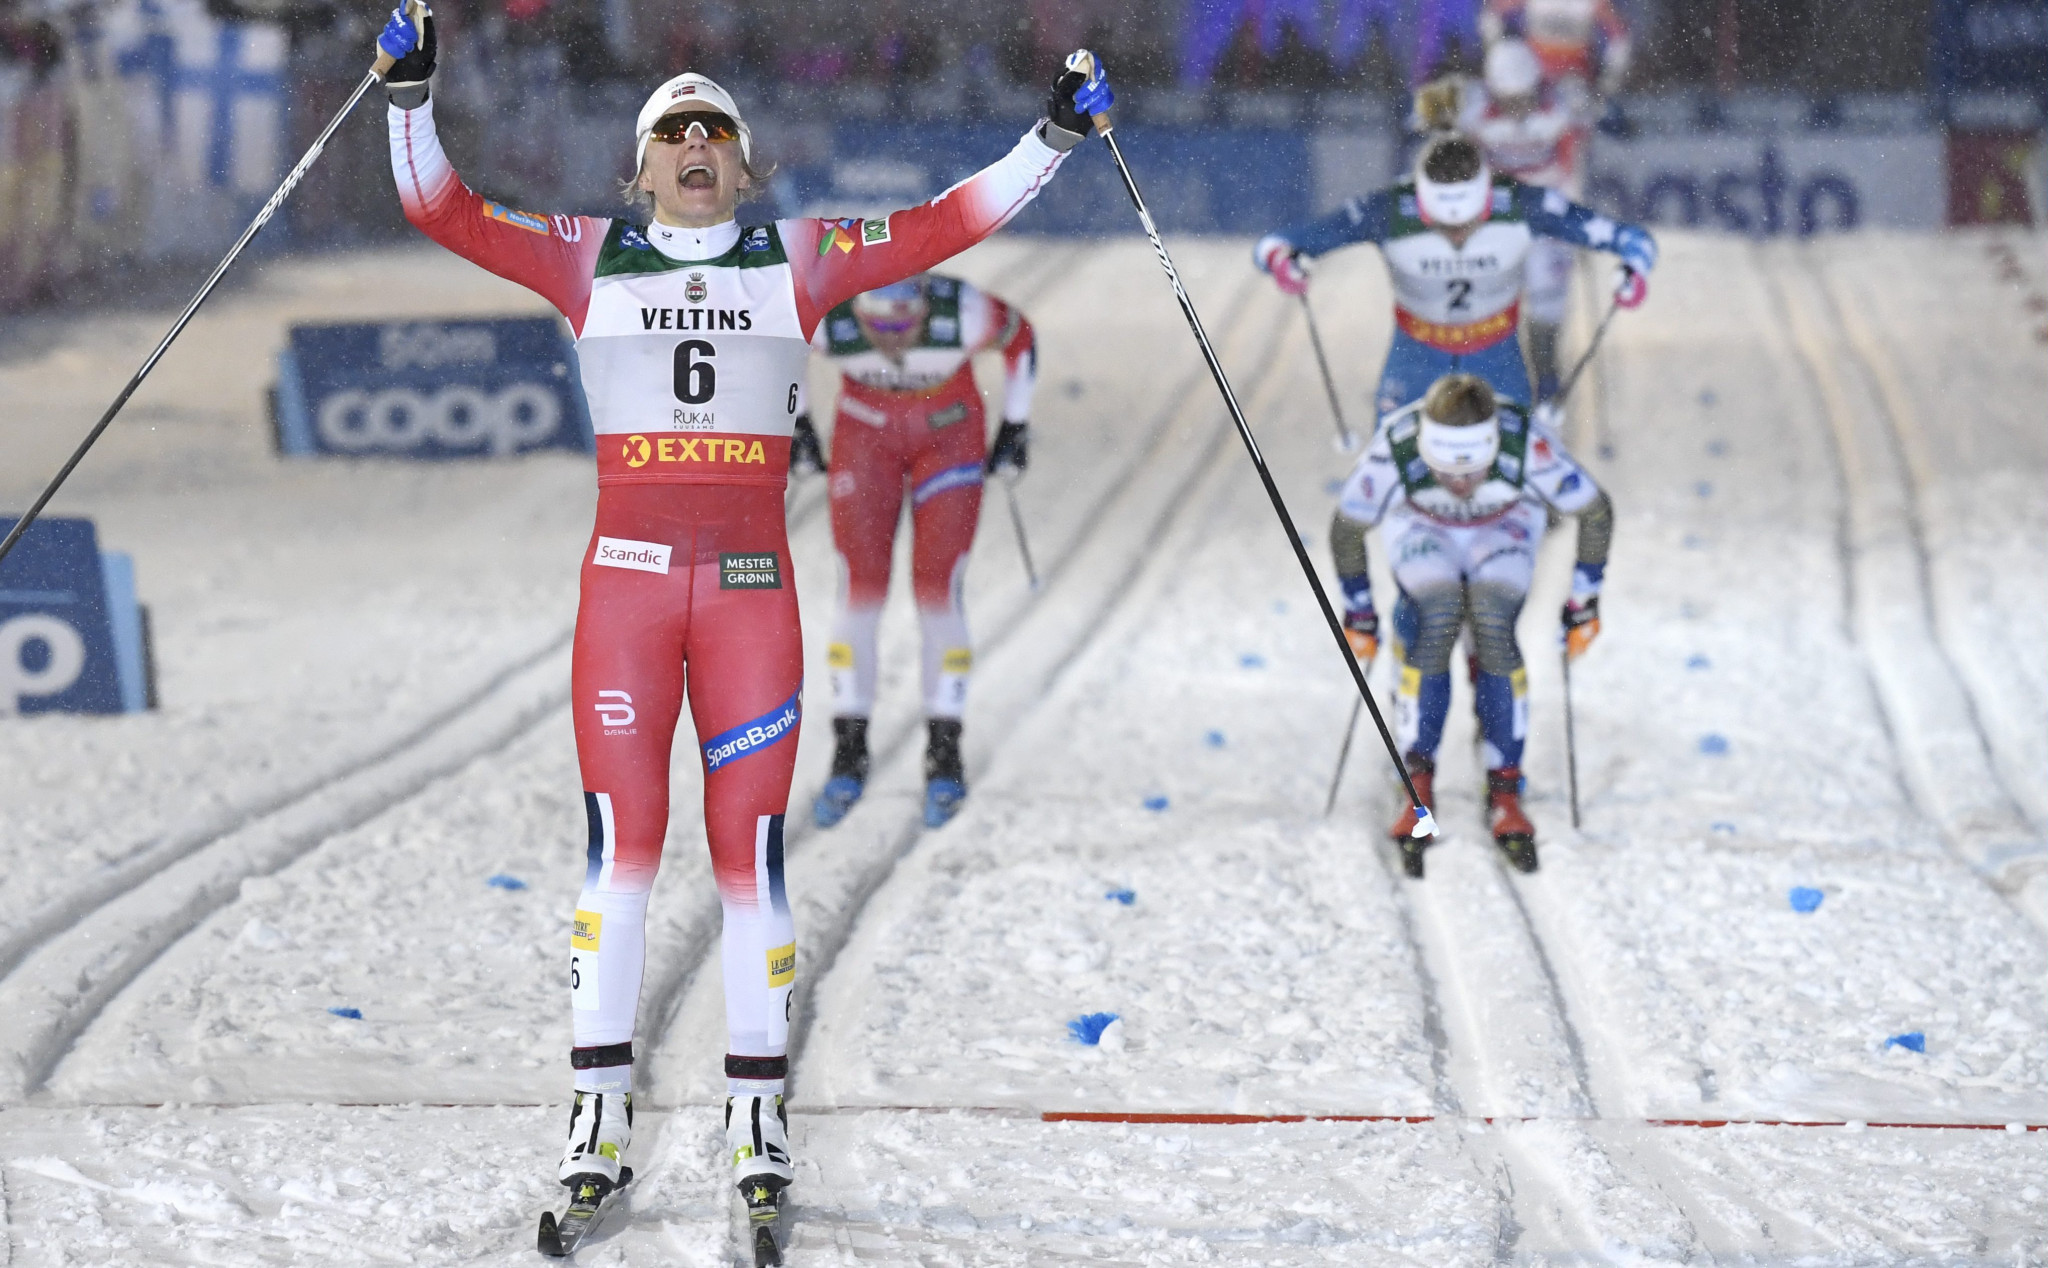 Maiken Caspersen Falla triumphed in the women's sprint race ©Getty Images